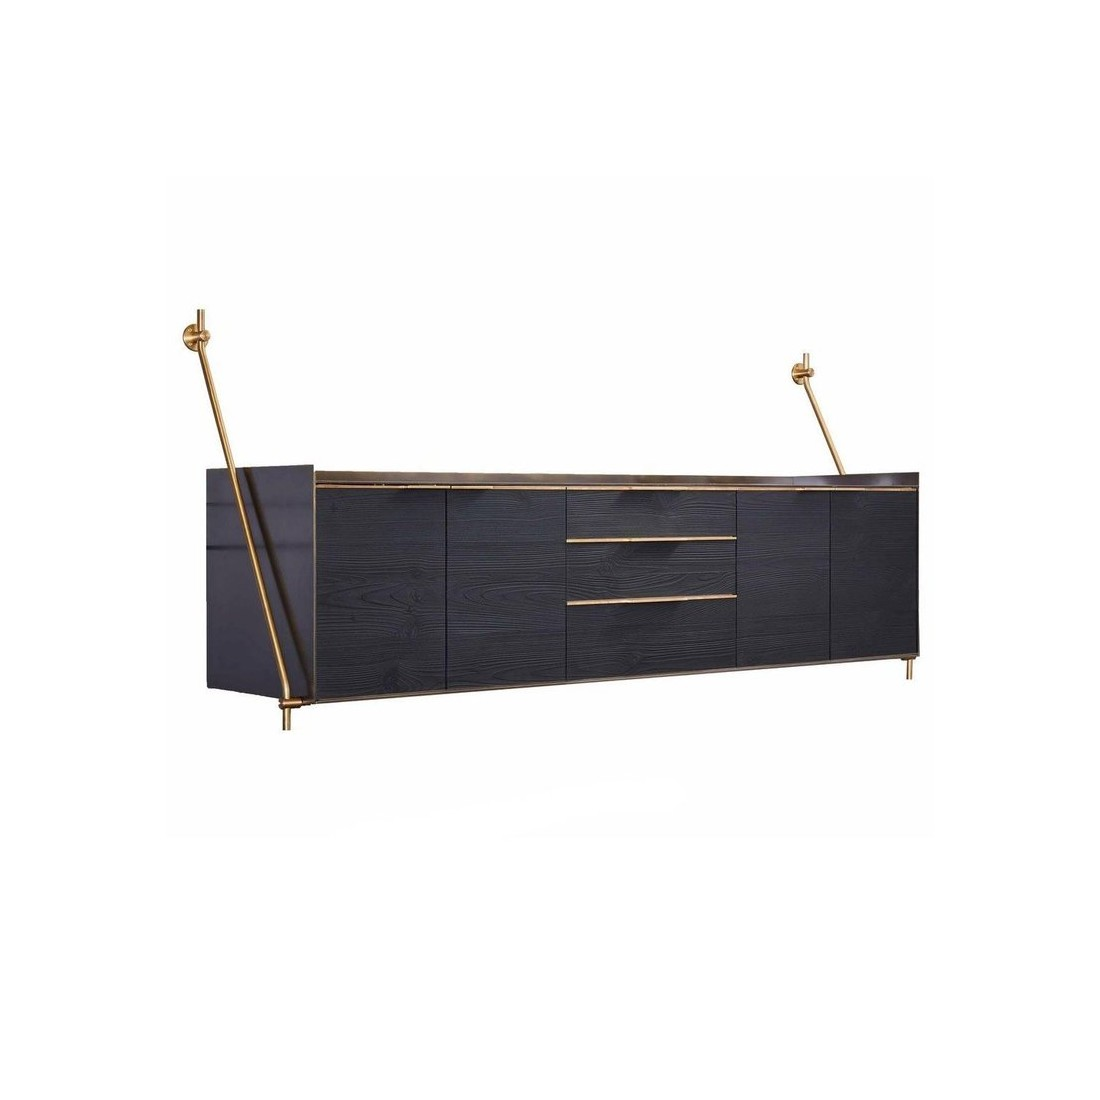 Буфет Wall-Mounted Credenza in Bronze and Burnt Pine from Amuneal's